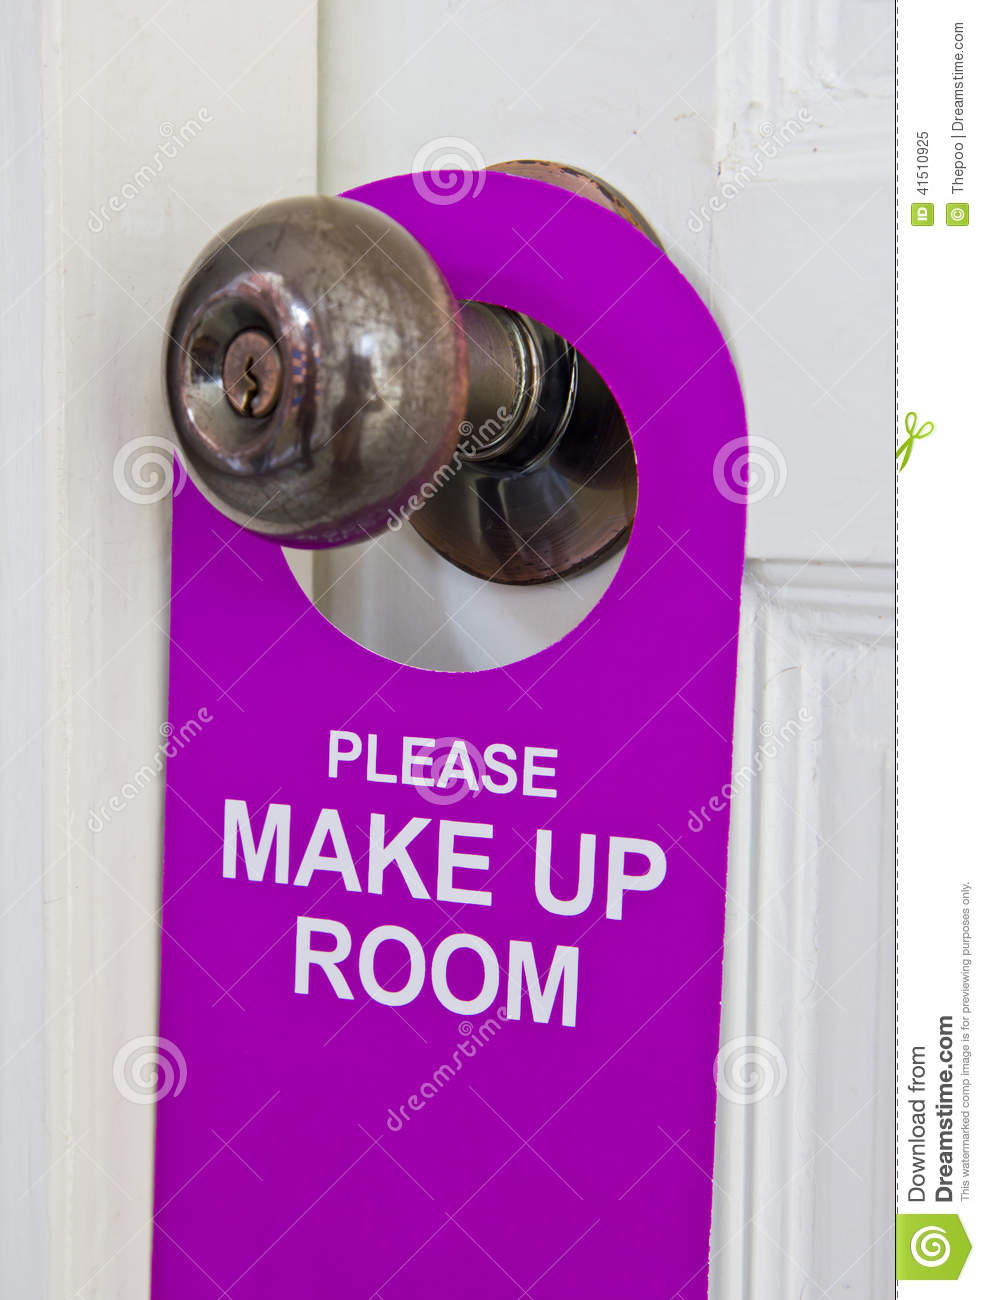 Please make up room stock photo image 41510925 for The make room